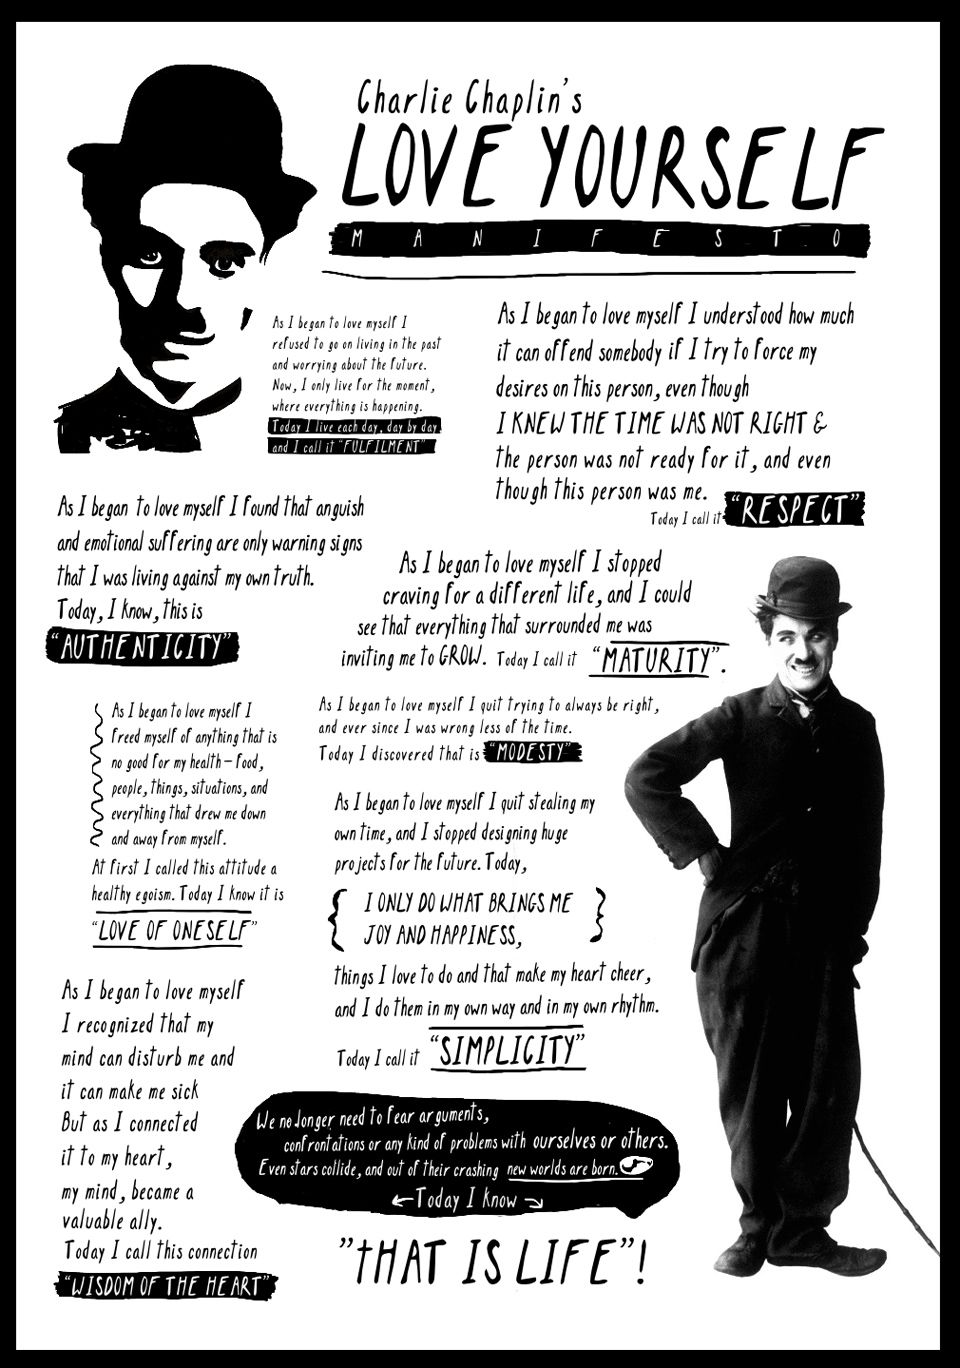 Free Download Charlie Chaplin S Love Yourself Manifesto Mindvalley